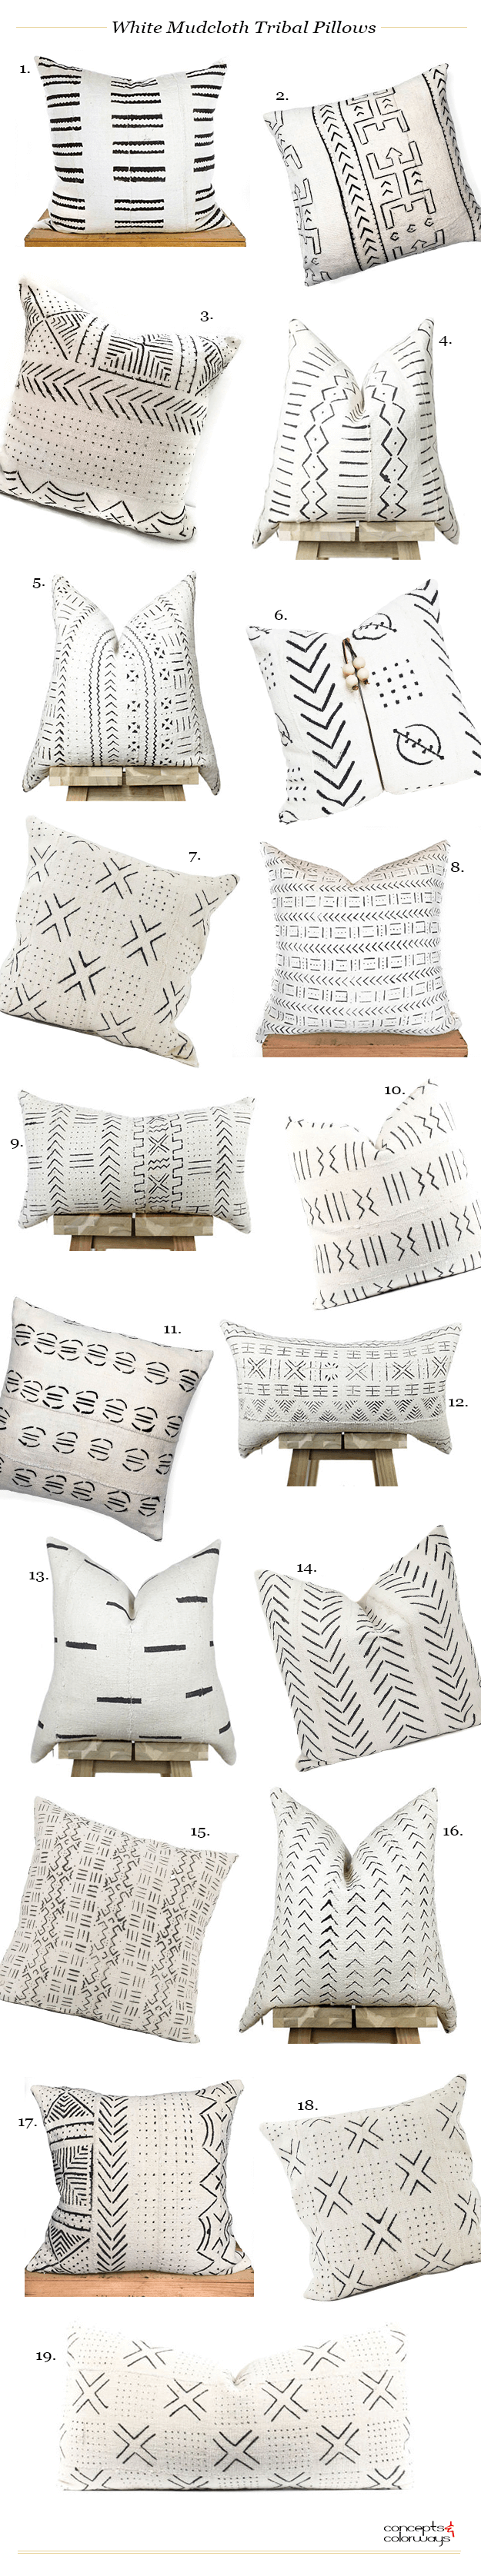 White mudcloth tribal pillows modern pillows and modern house design